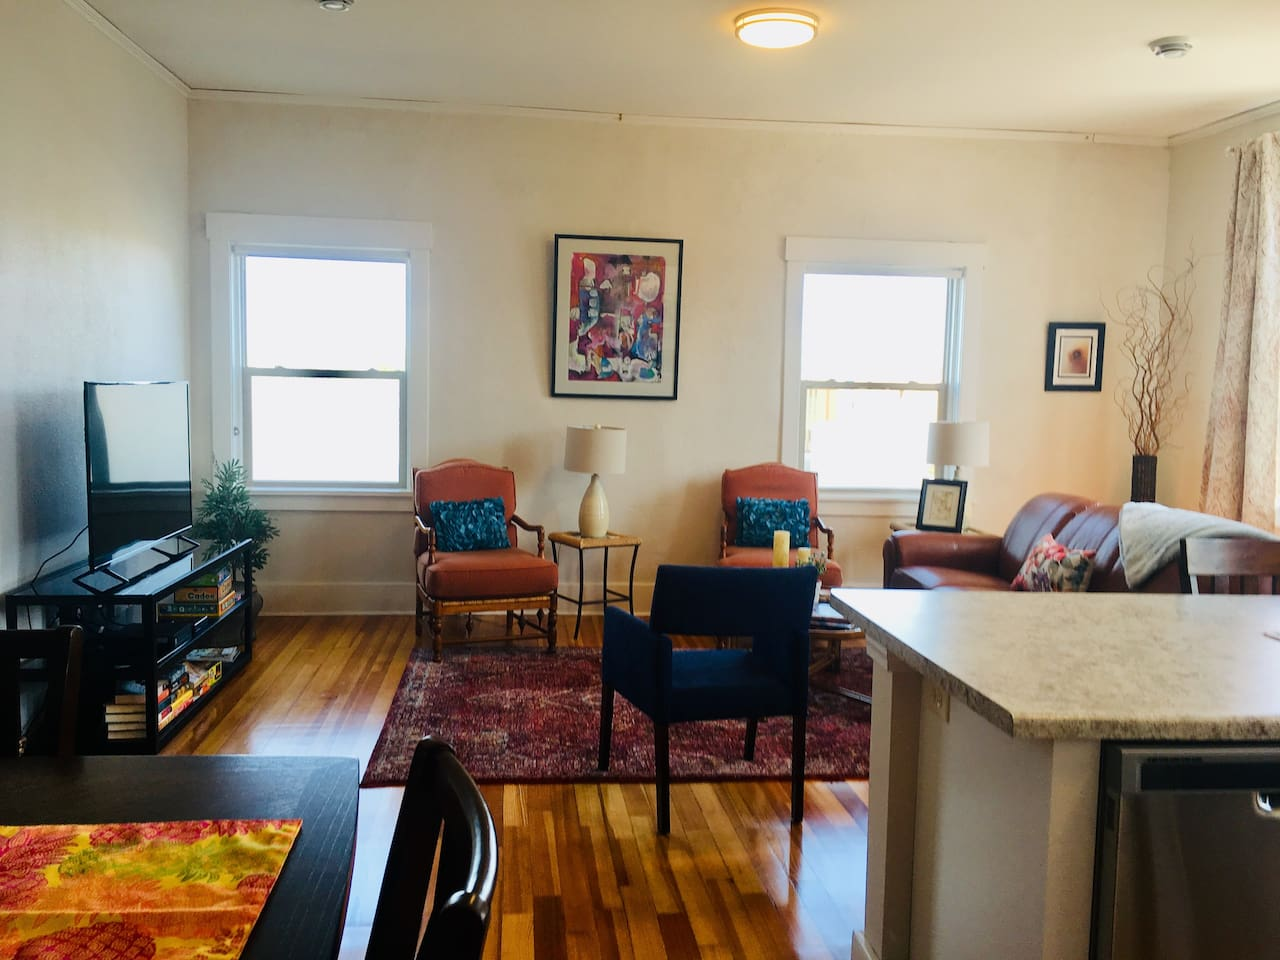 Sun drenched living room overlooking the heart of downtown Grinnell!